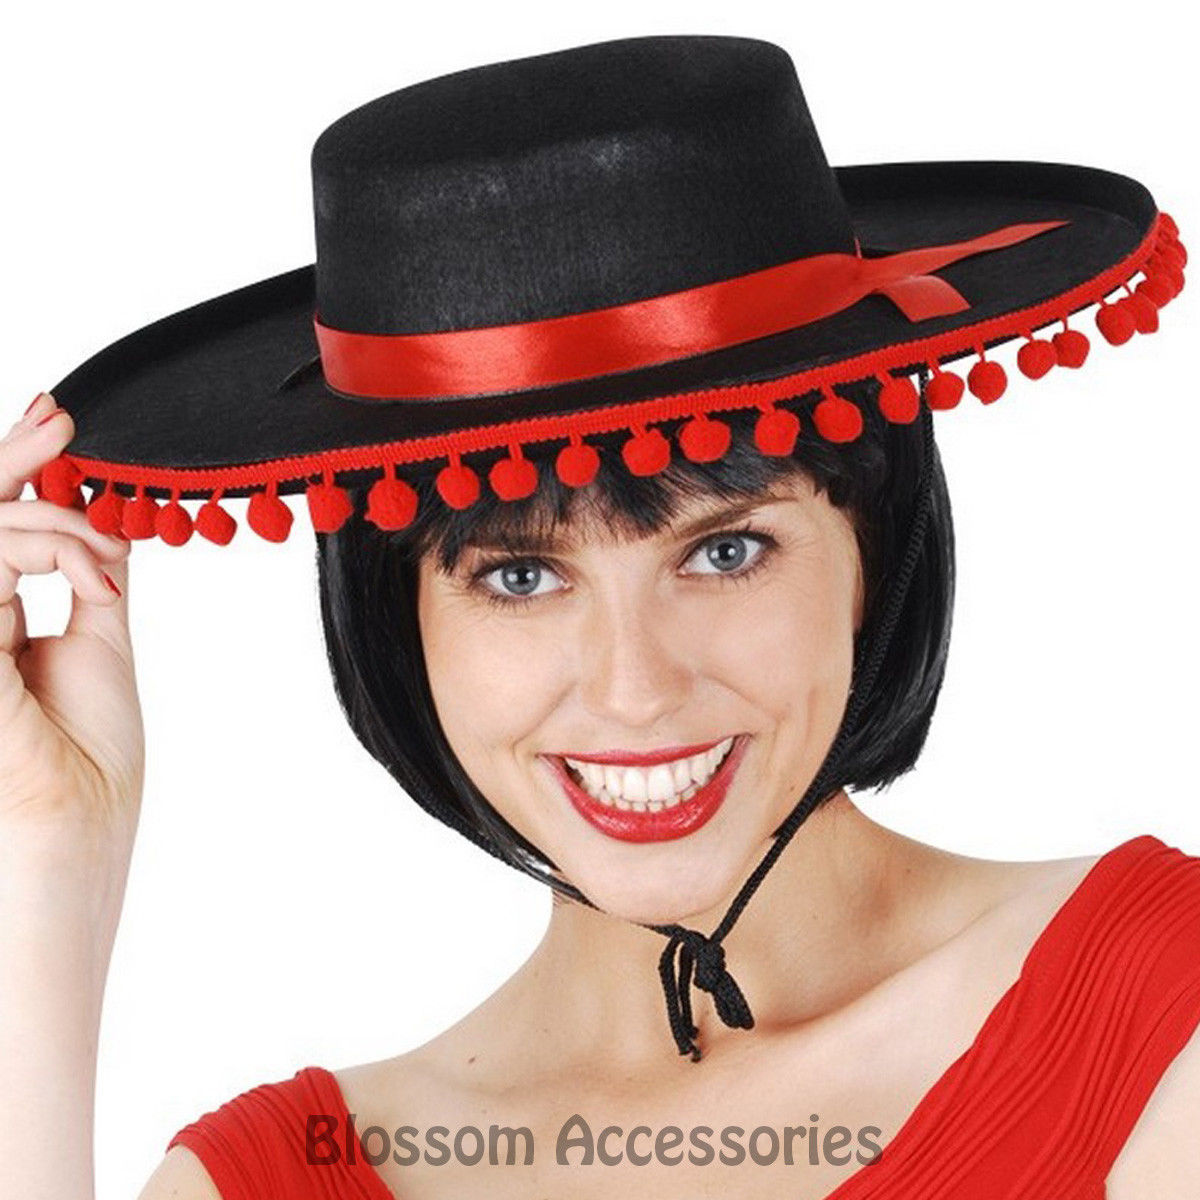 12 5 Aud A794 Mexican Sombrero Felt Hat Party Fancy Dress Fiesta Costume Spanish Red Poms Ebay Fashion Fiesta Costume Spanish Hat Spanish Costume